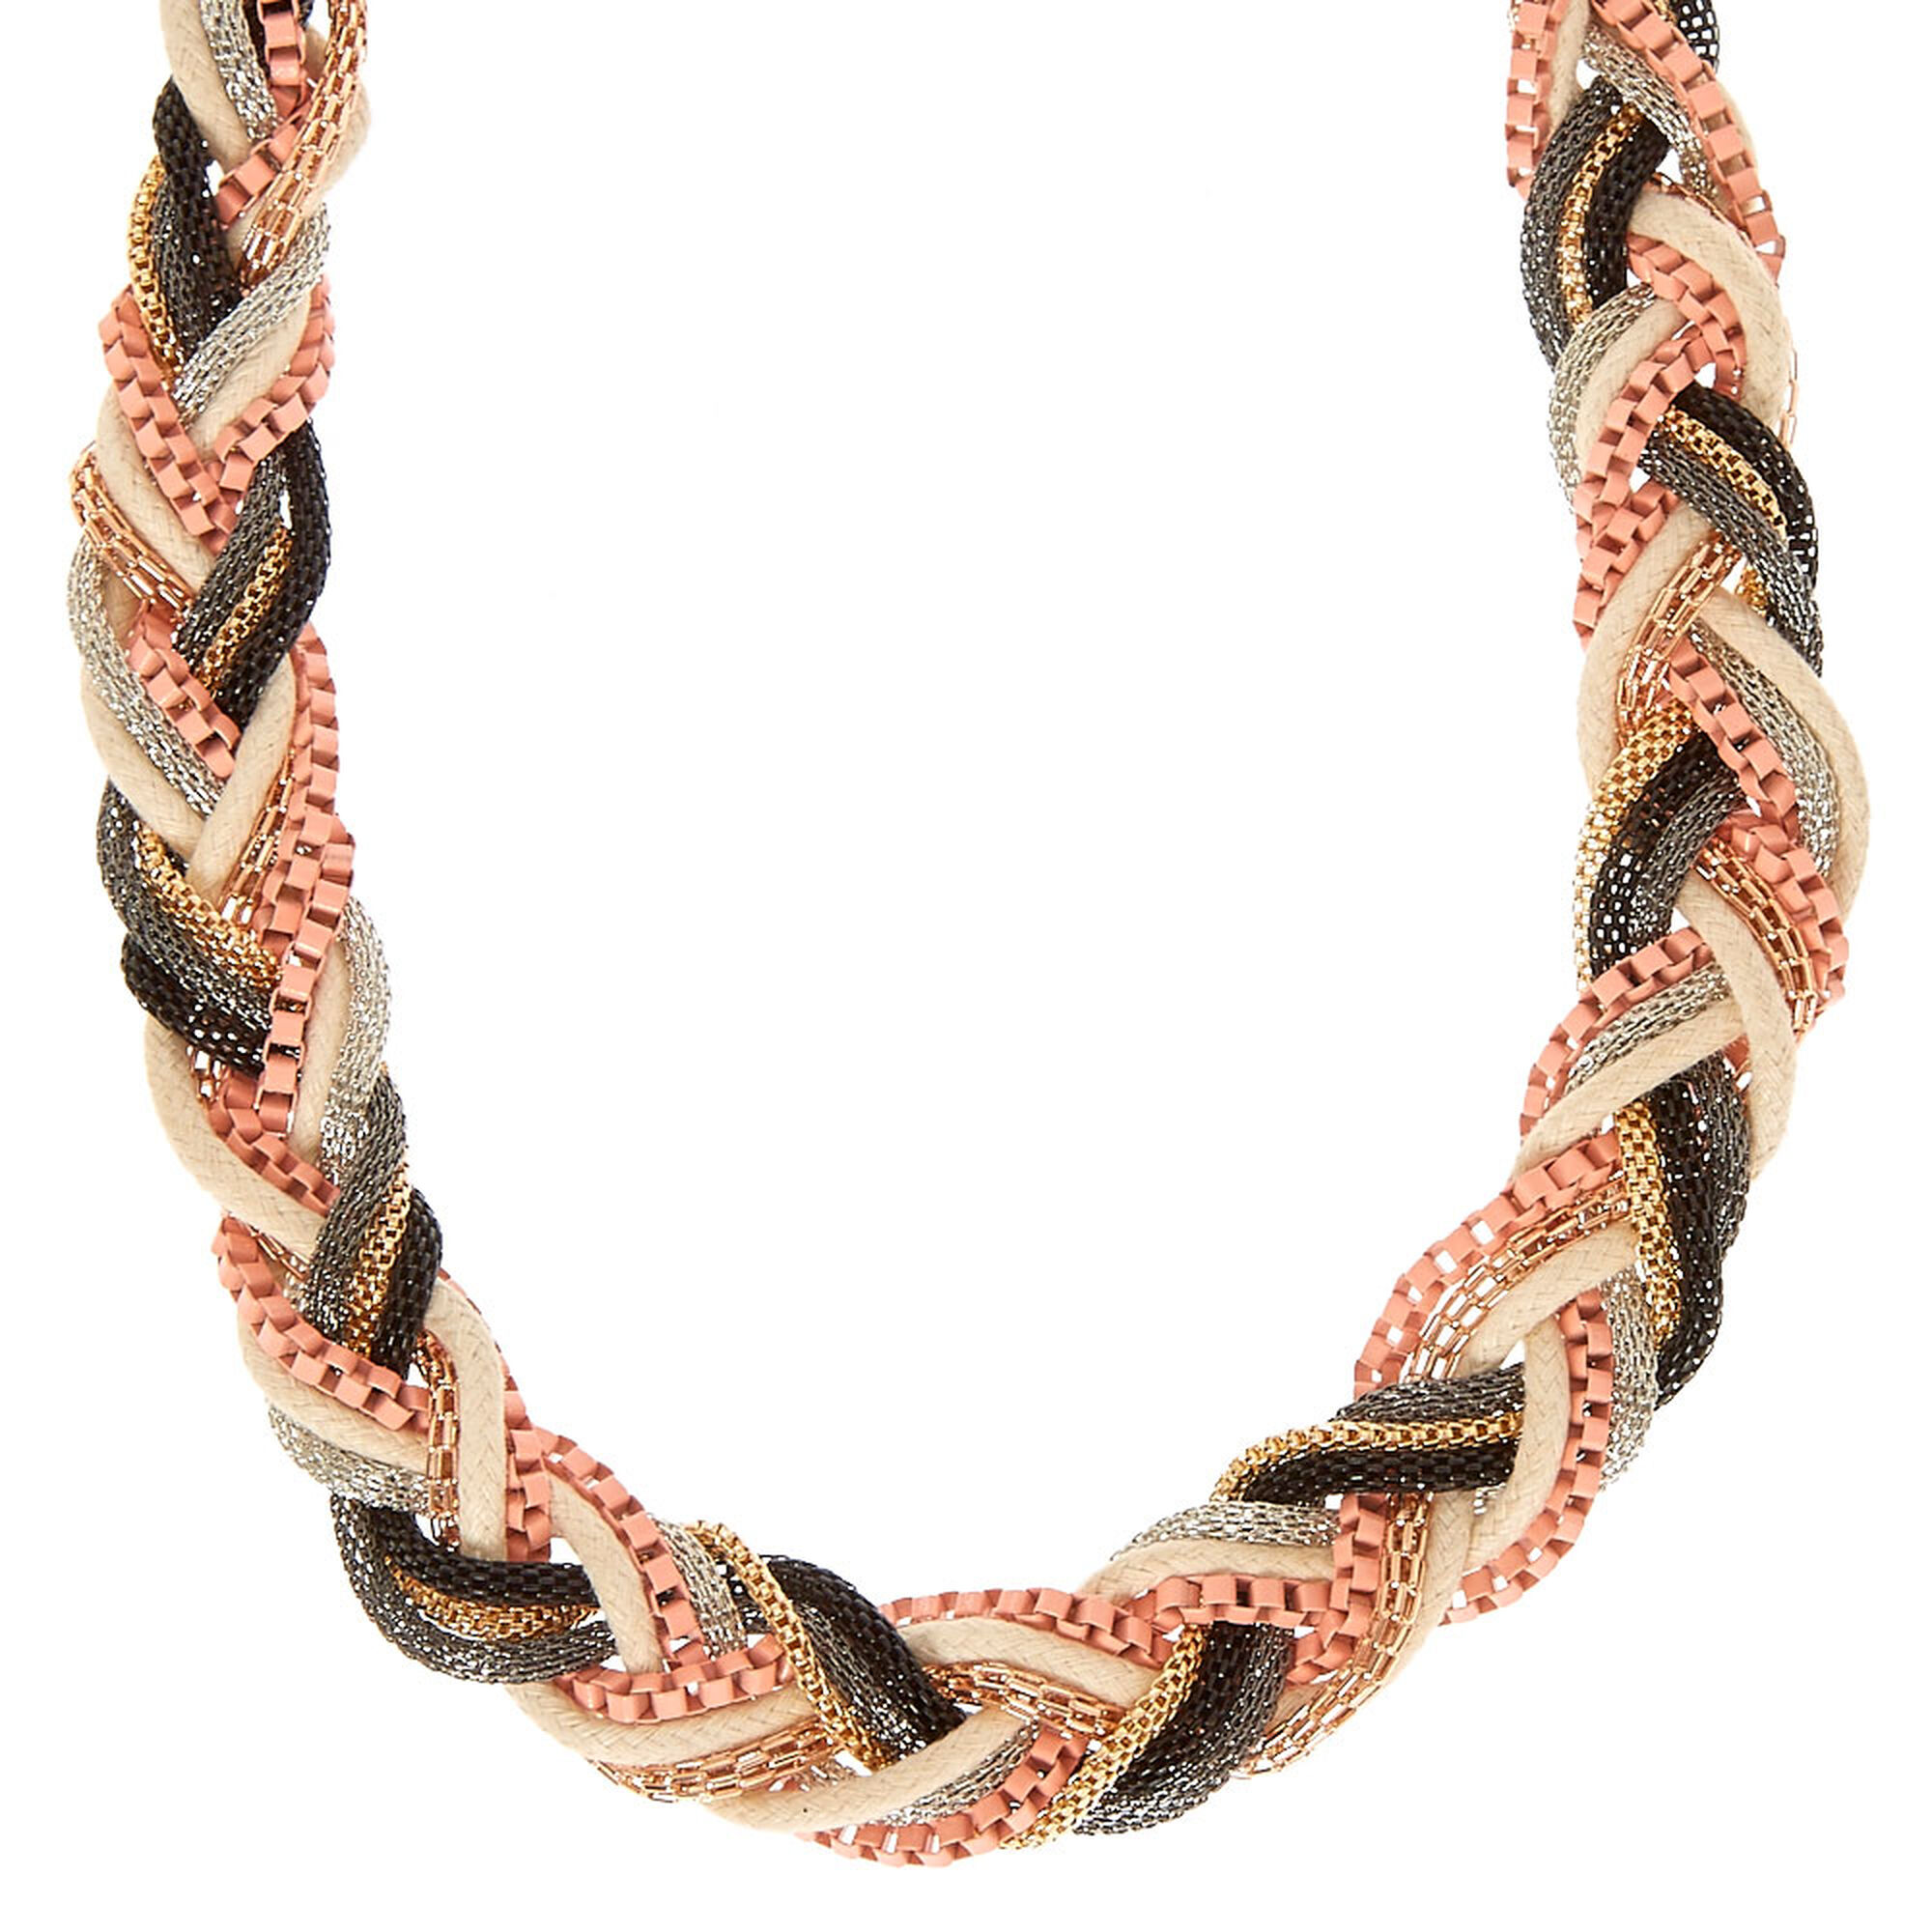 chain ecuatwitt braided statement mixed rope necklace metal choker